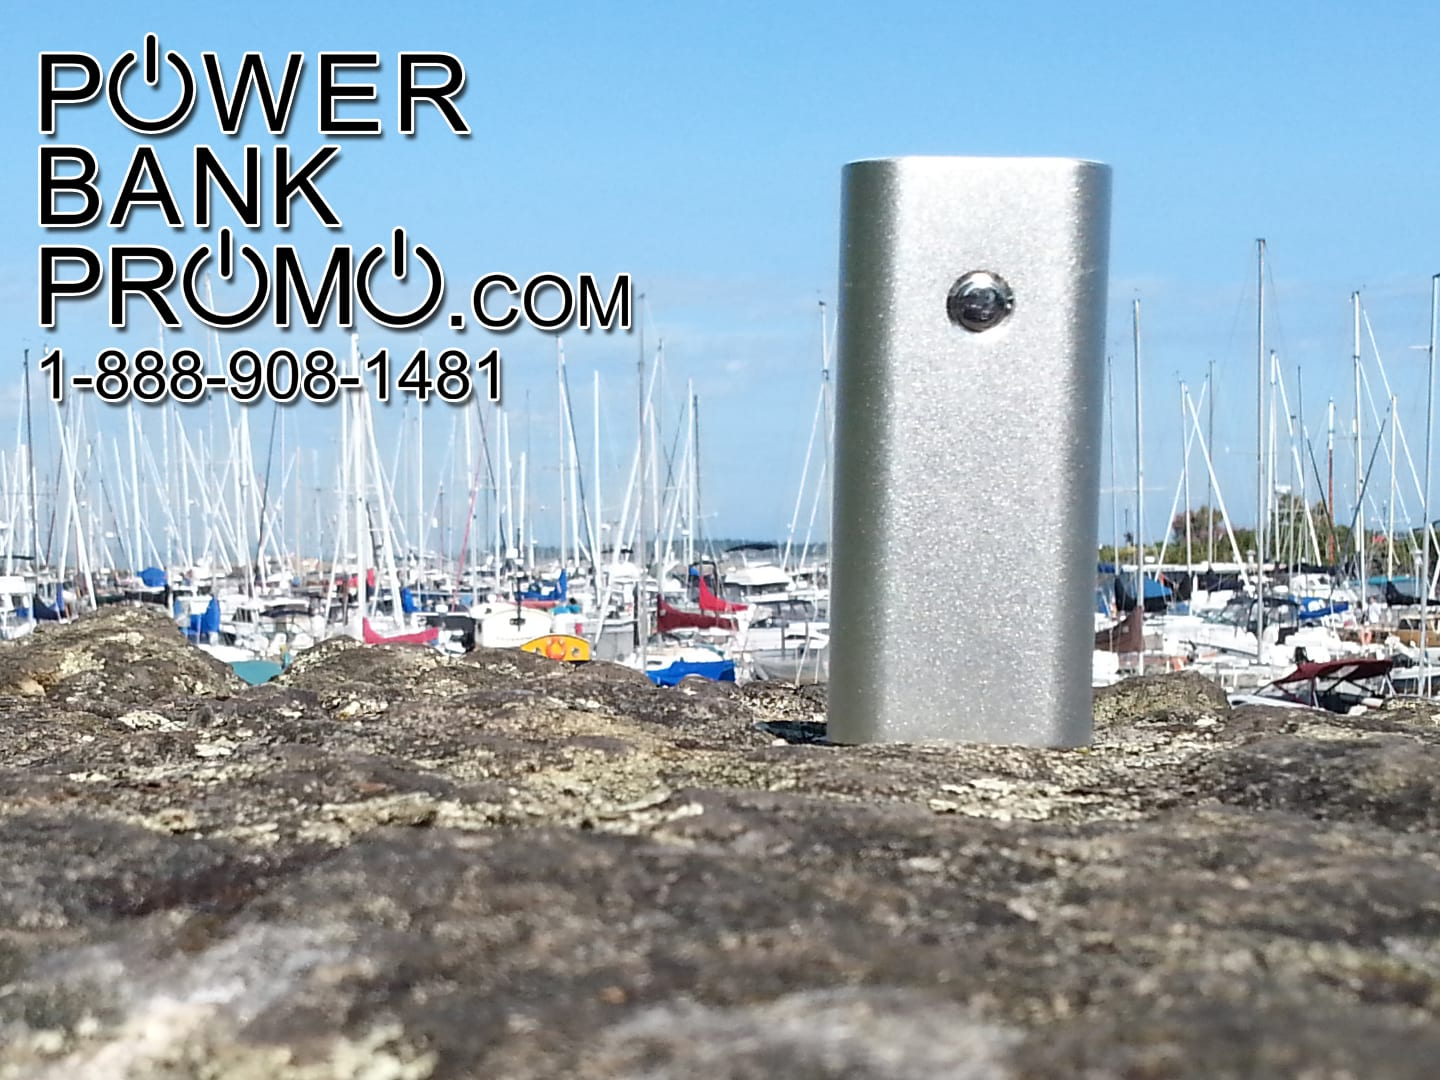 Power Banks for your logo